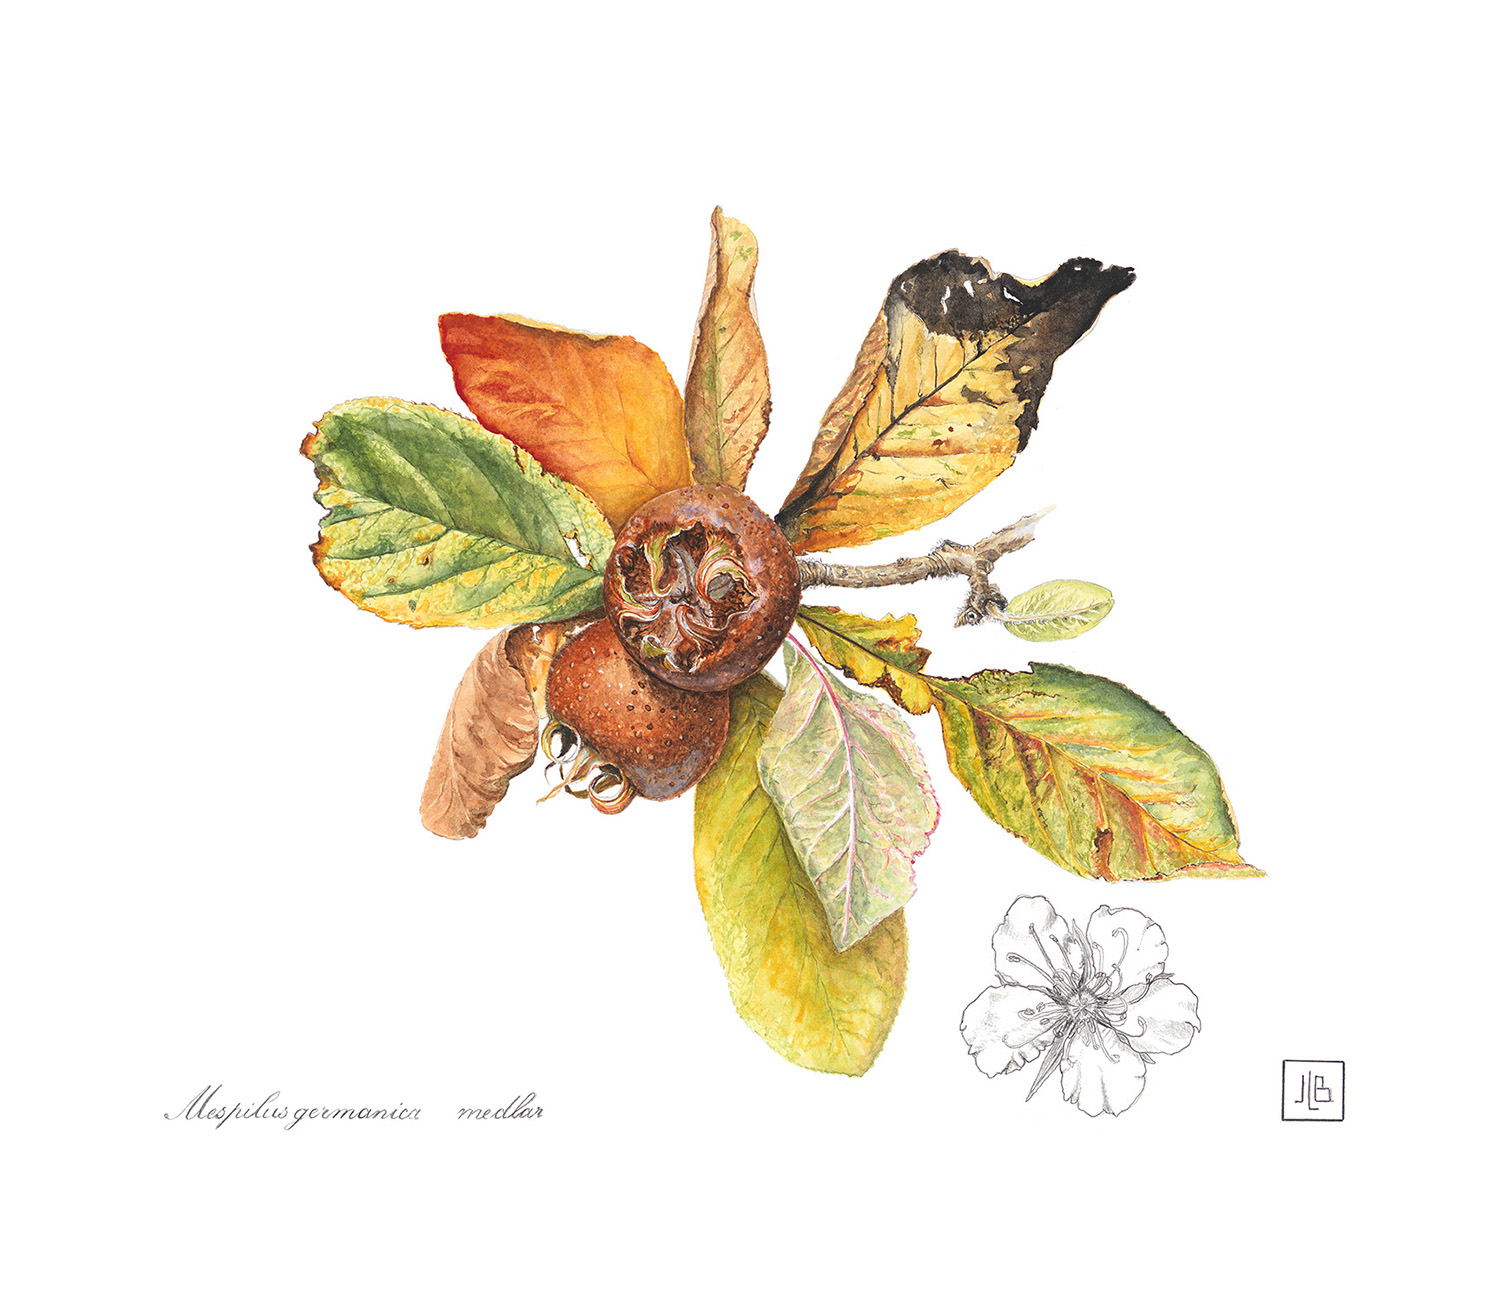 Medlar, Mespilus germanica